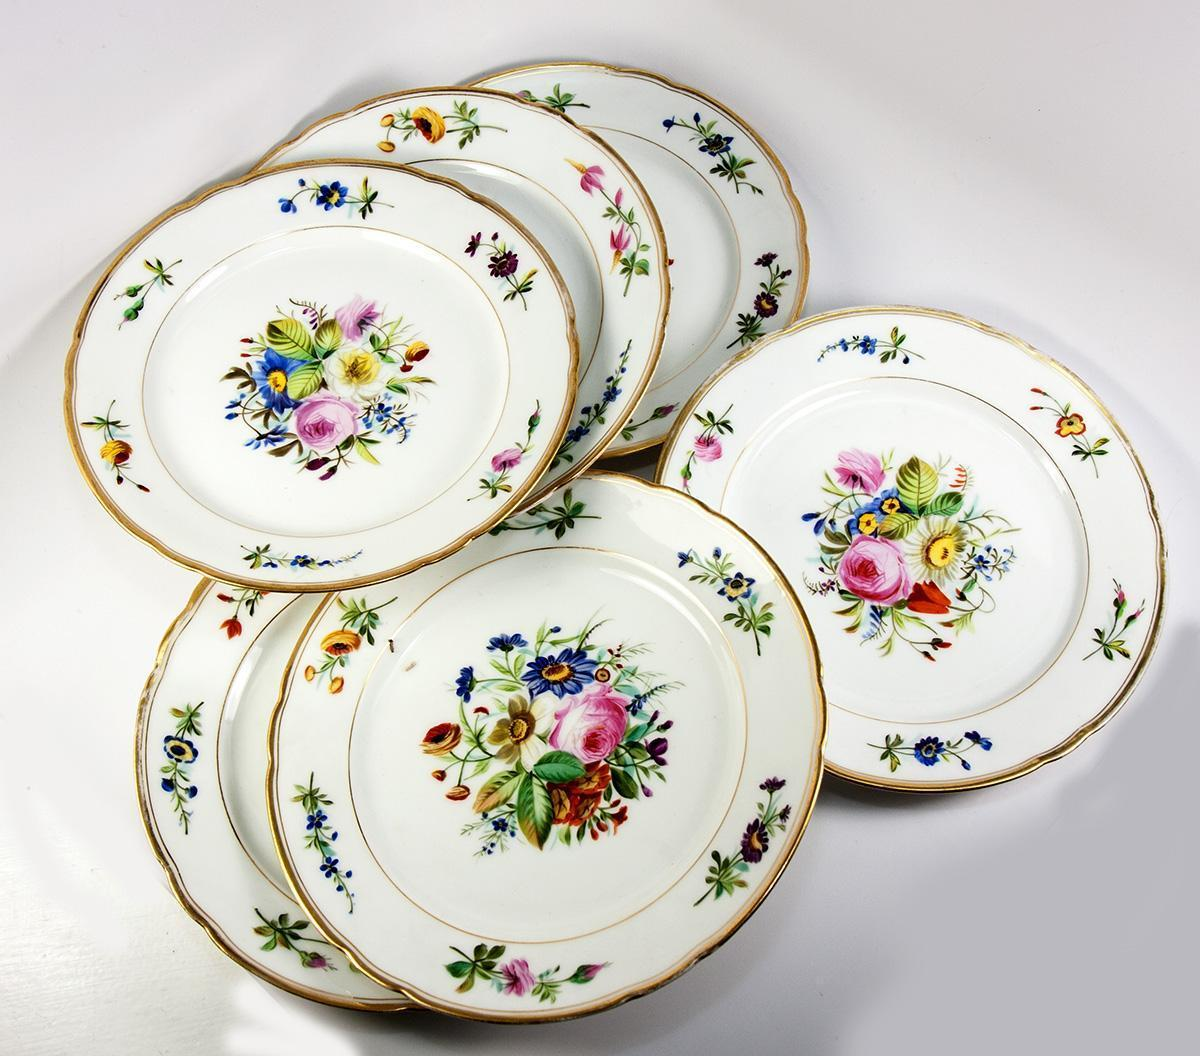 Set of 6 Antique French Old Paris Porcelain Plates, Hand Painted Bouquets, Superb!